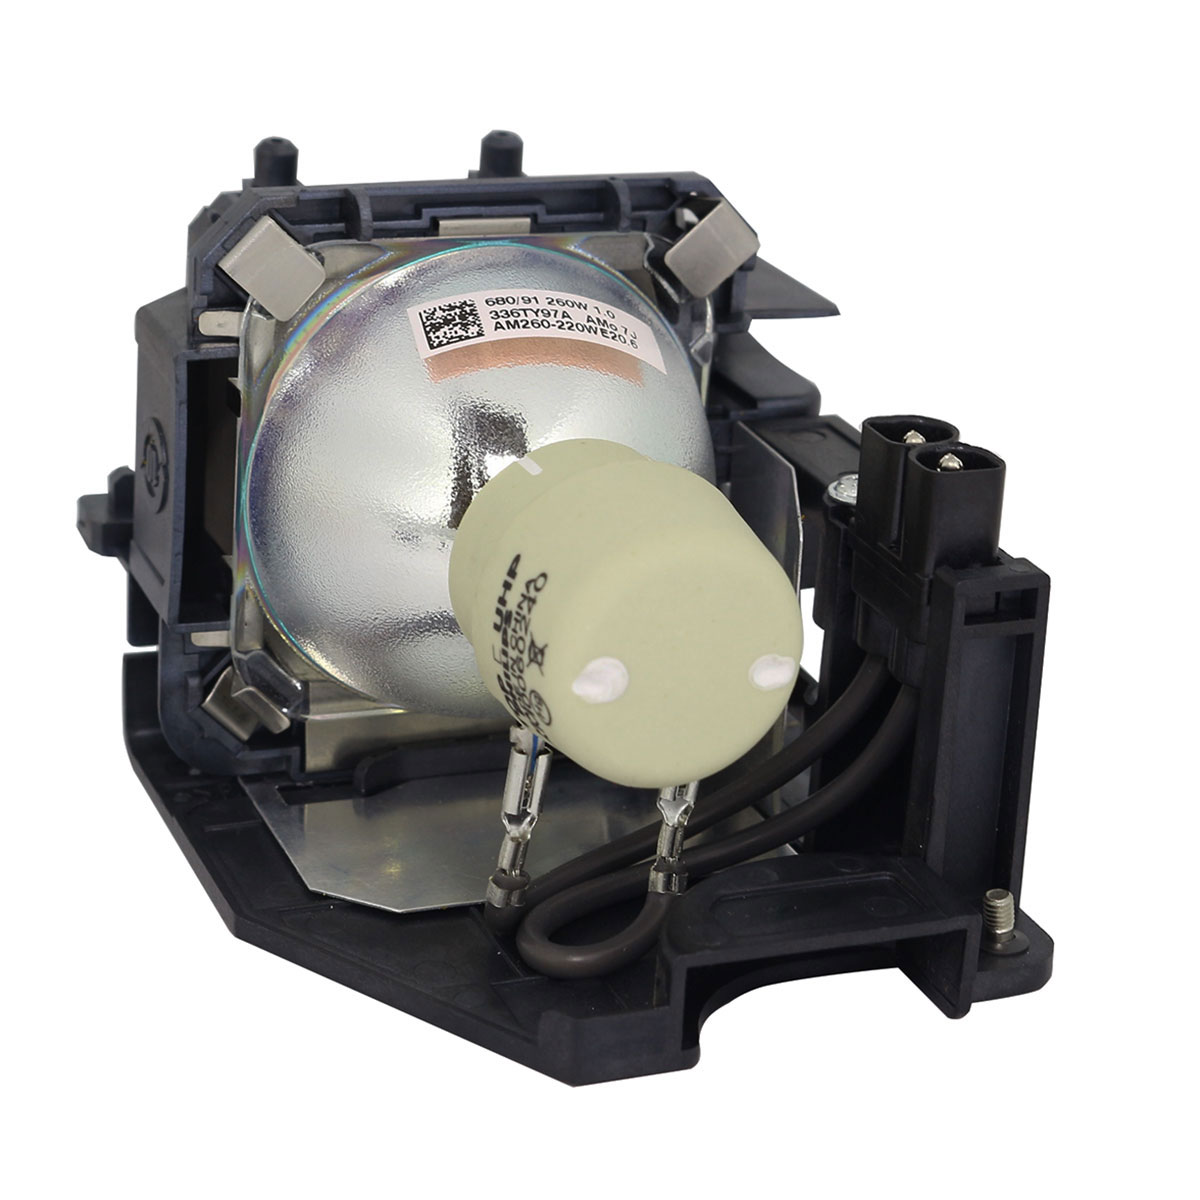 Lutema Economy Bulb for NEC NP-UM330WiJL Projector (Lamp Only) - image 2 of 5